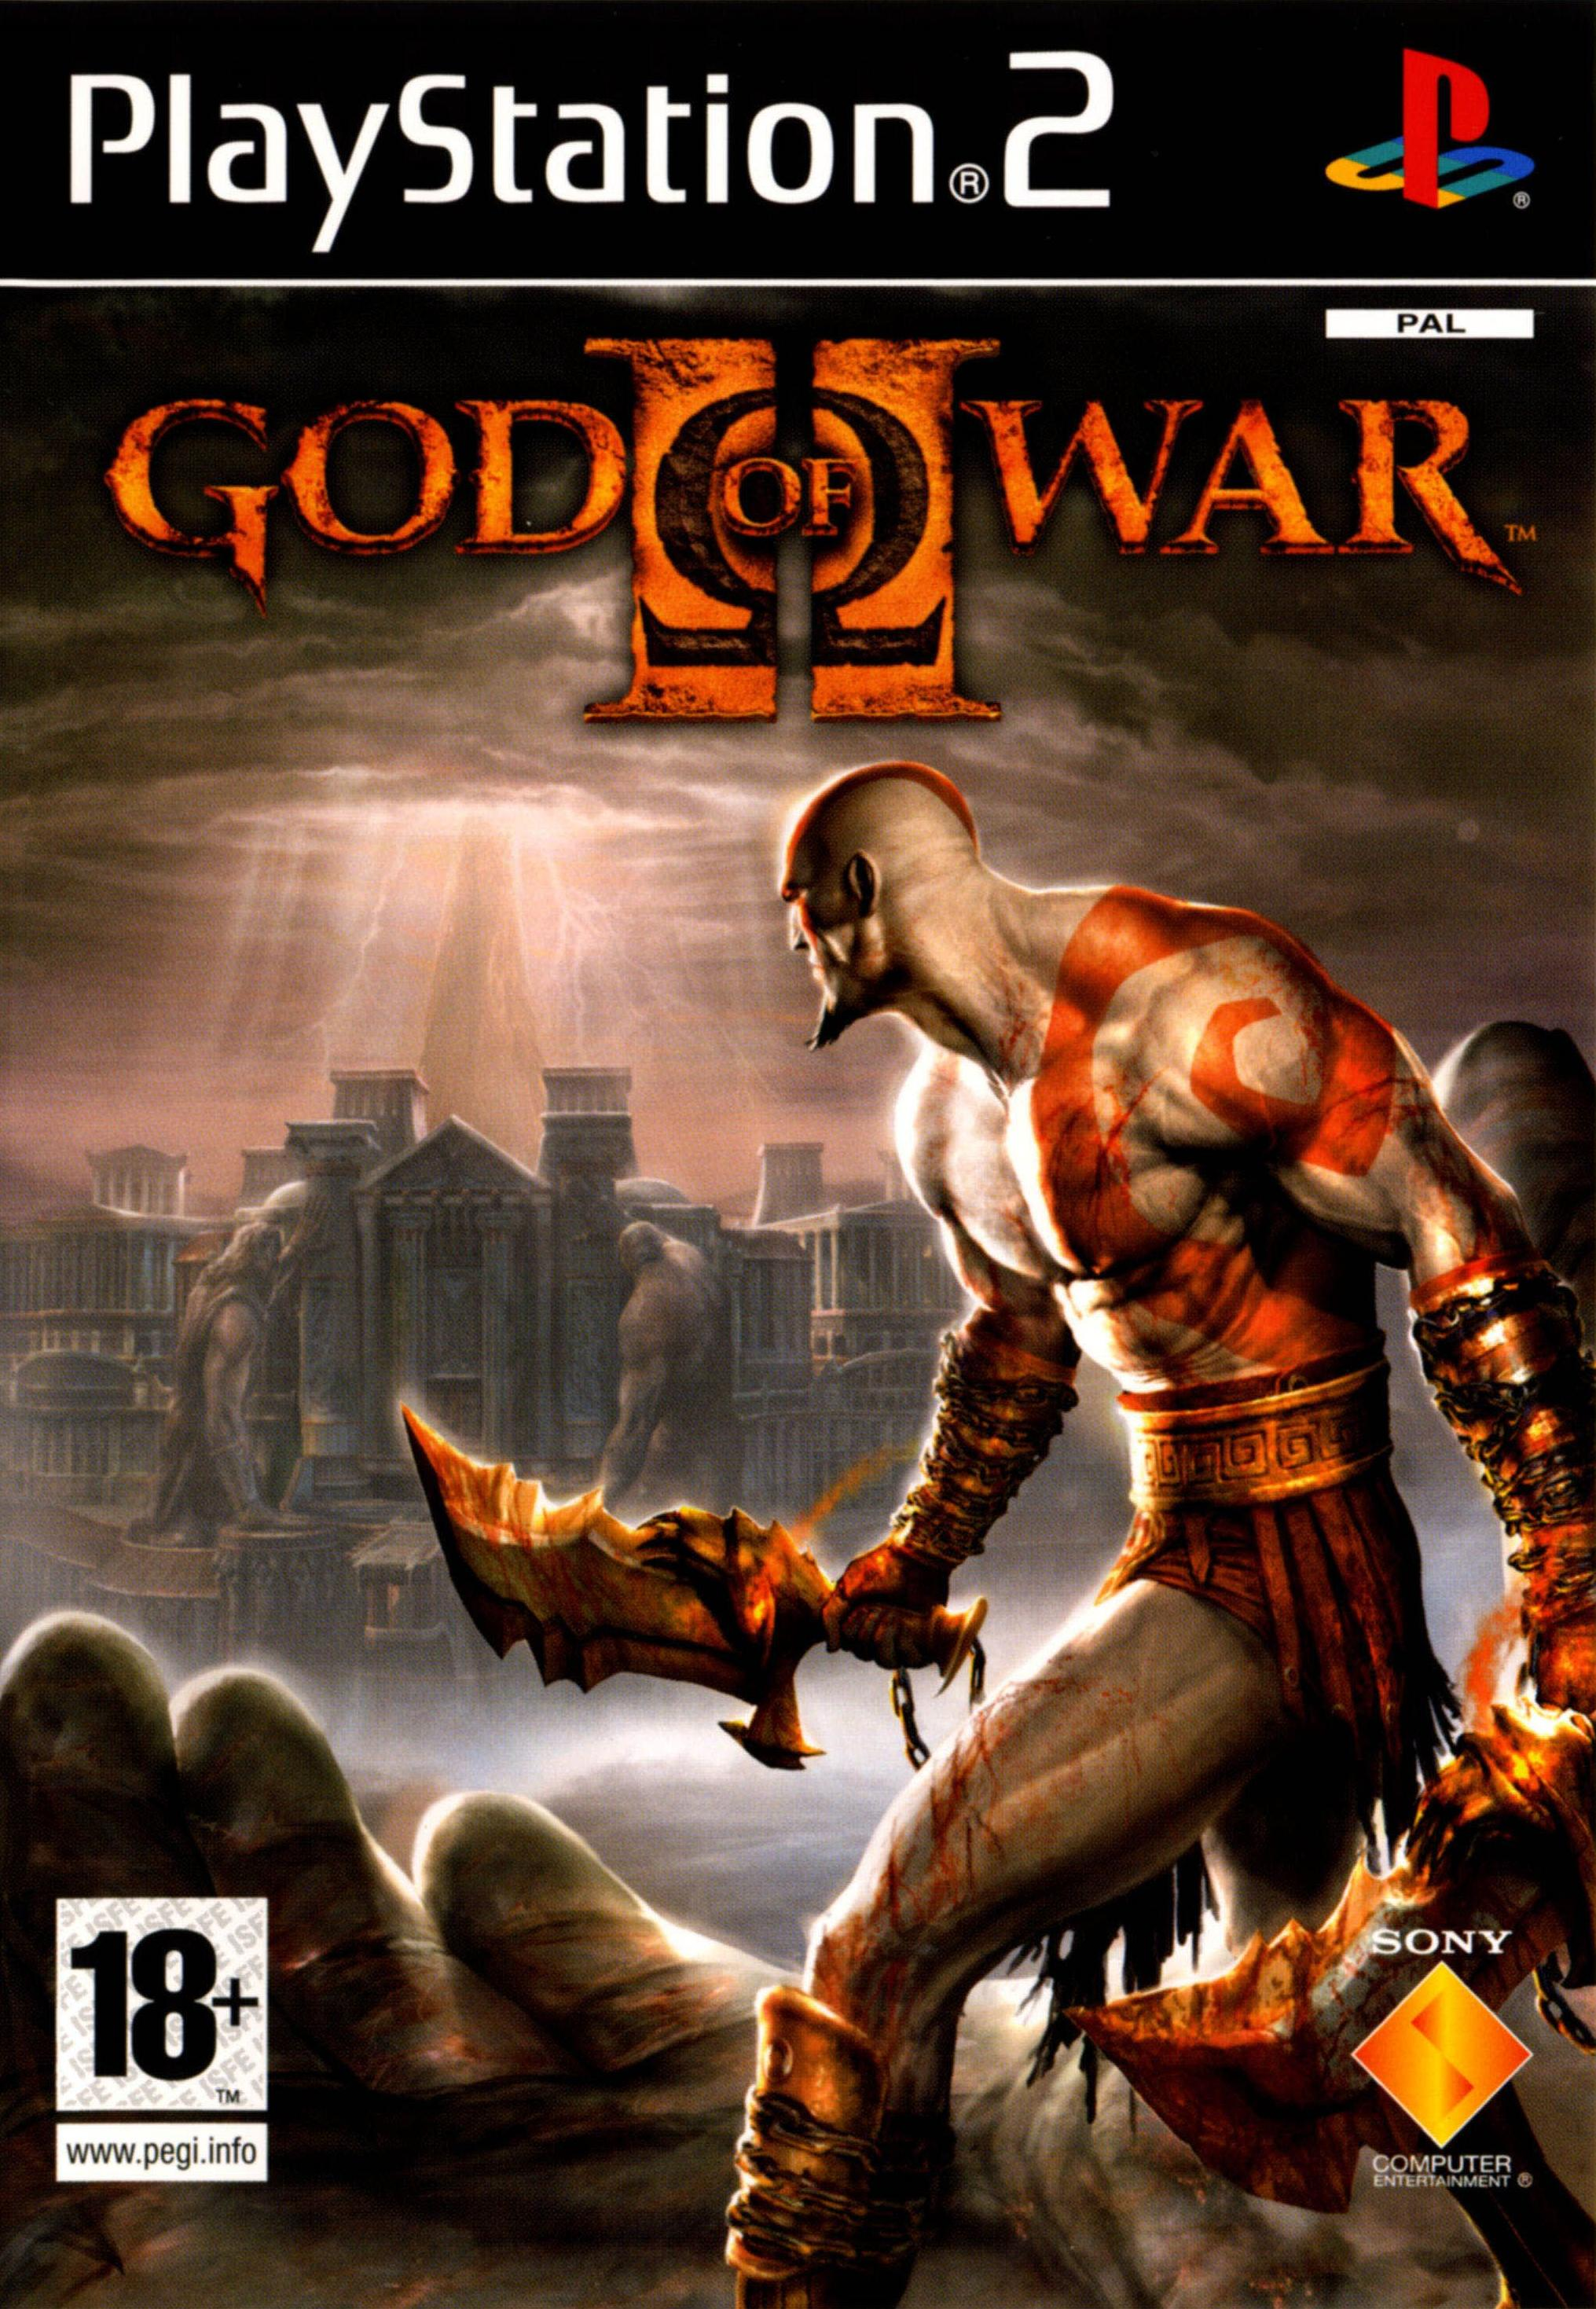 God of War 2 Videos Movies & Trailers - PlayStation 2 - IGN